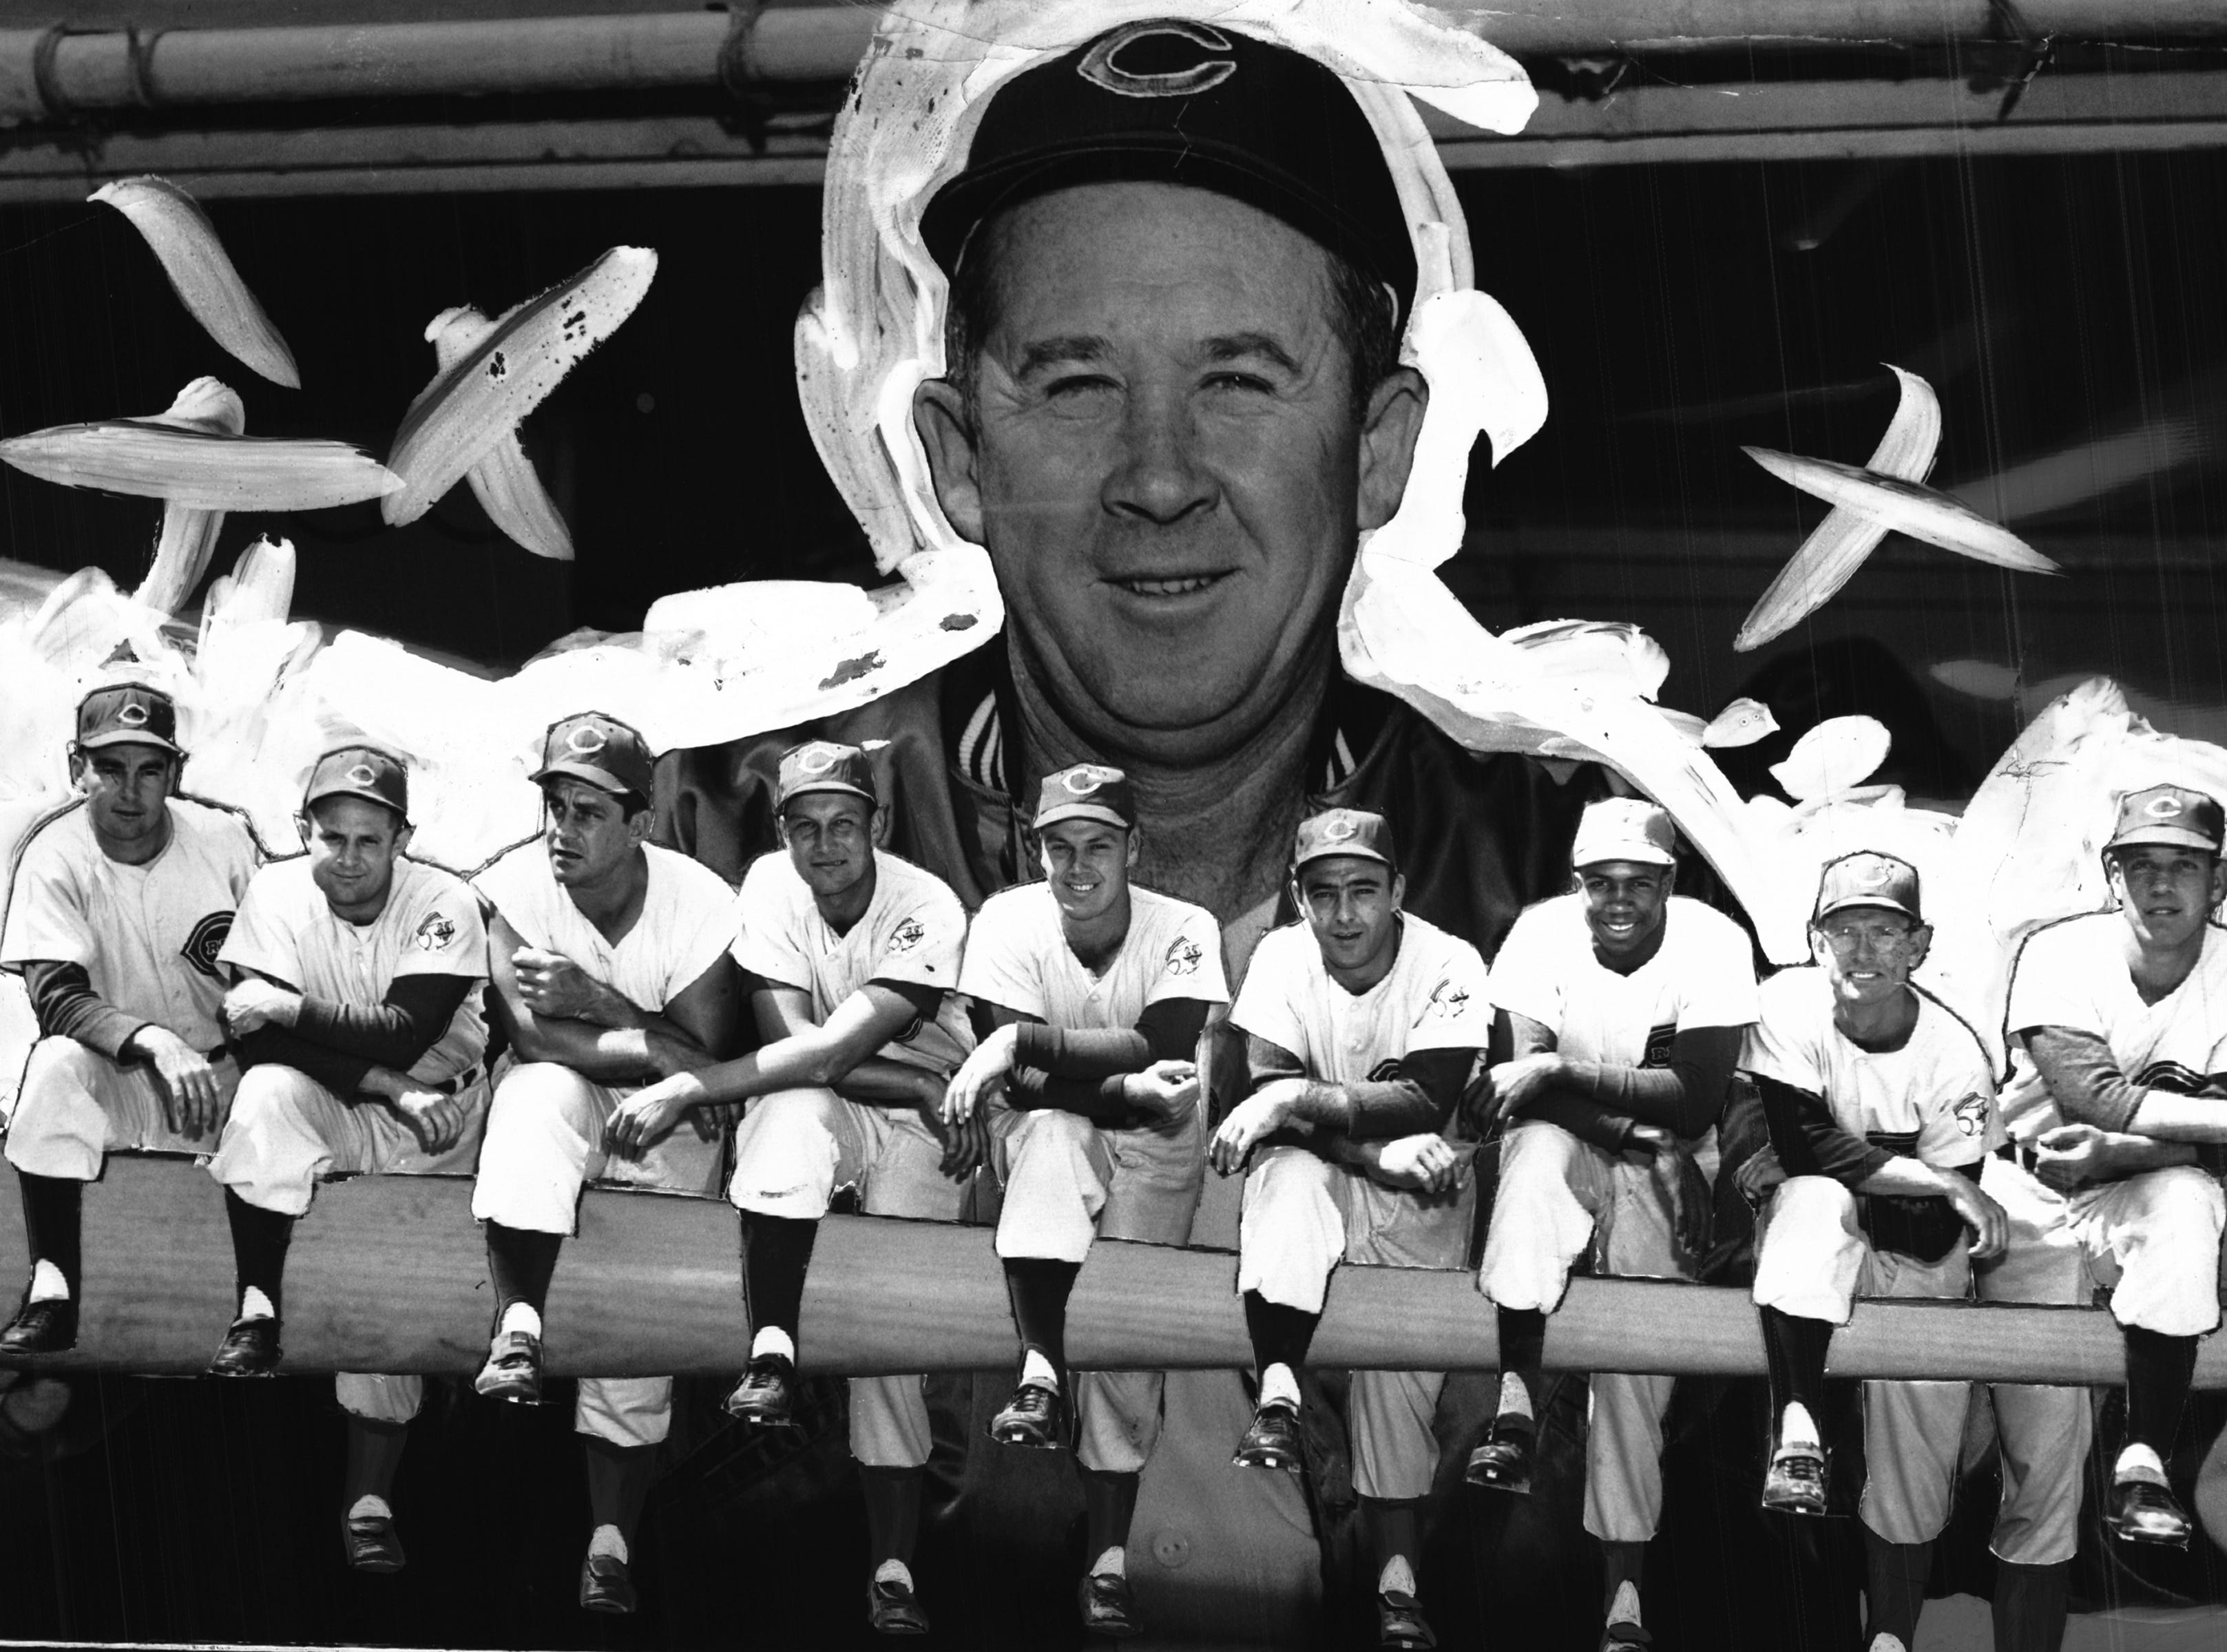 Manager Birdie Tebbetts proudly holds the 1956 Cincinnati Reds starting line-up in his hands. Left to right, Johnny Temple, 2b; Smoky Burgess, c; Ted Kluszewski, 1b; Wally Post, rf; Gus Bell, cf; Ray Jablonski, 3b; Frank Robinson, 1f; Roy McMillan, ss; and Joe Nuxhall, p. The Enquirer/Allan Kain